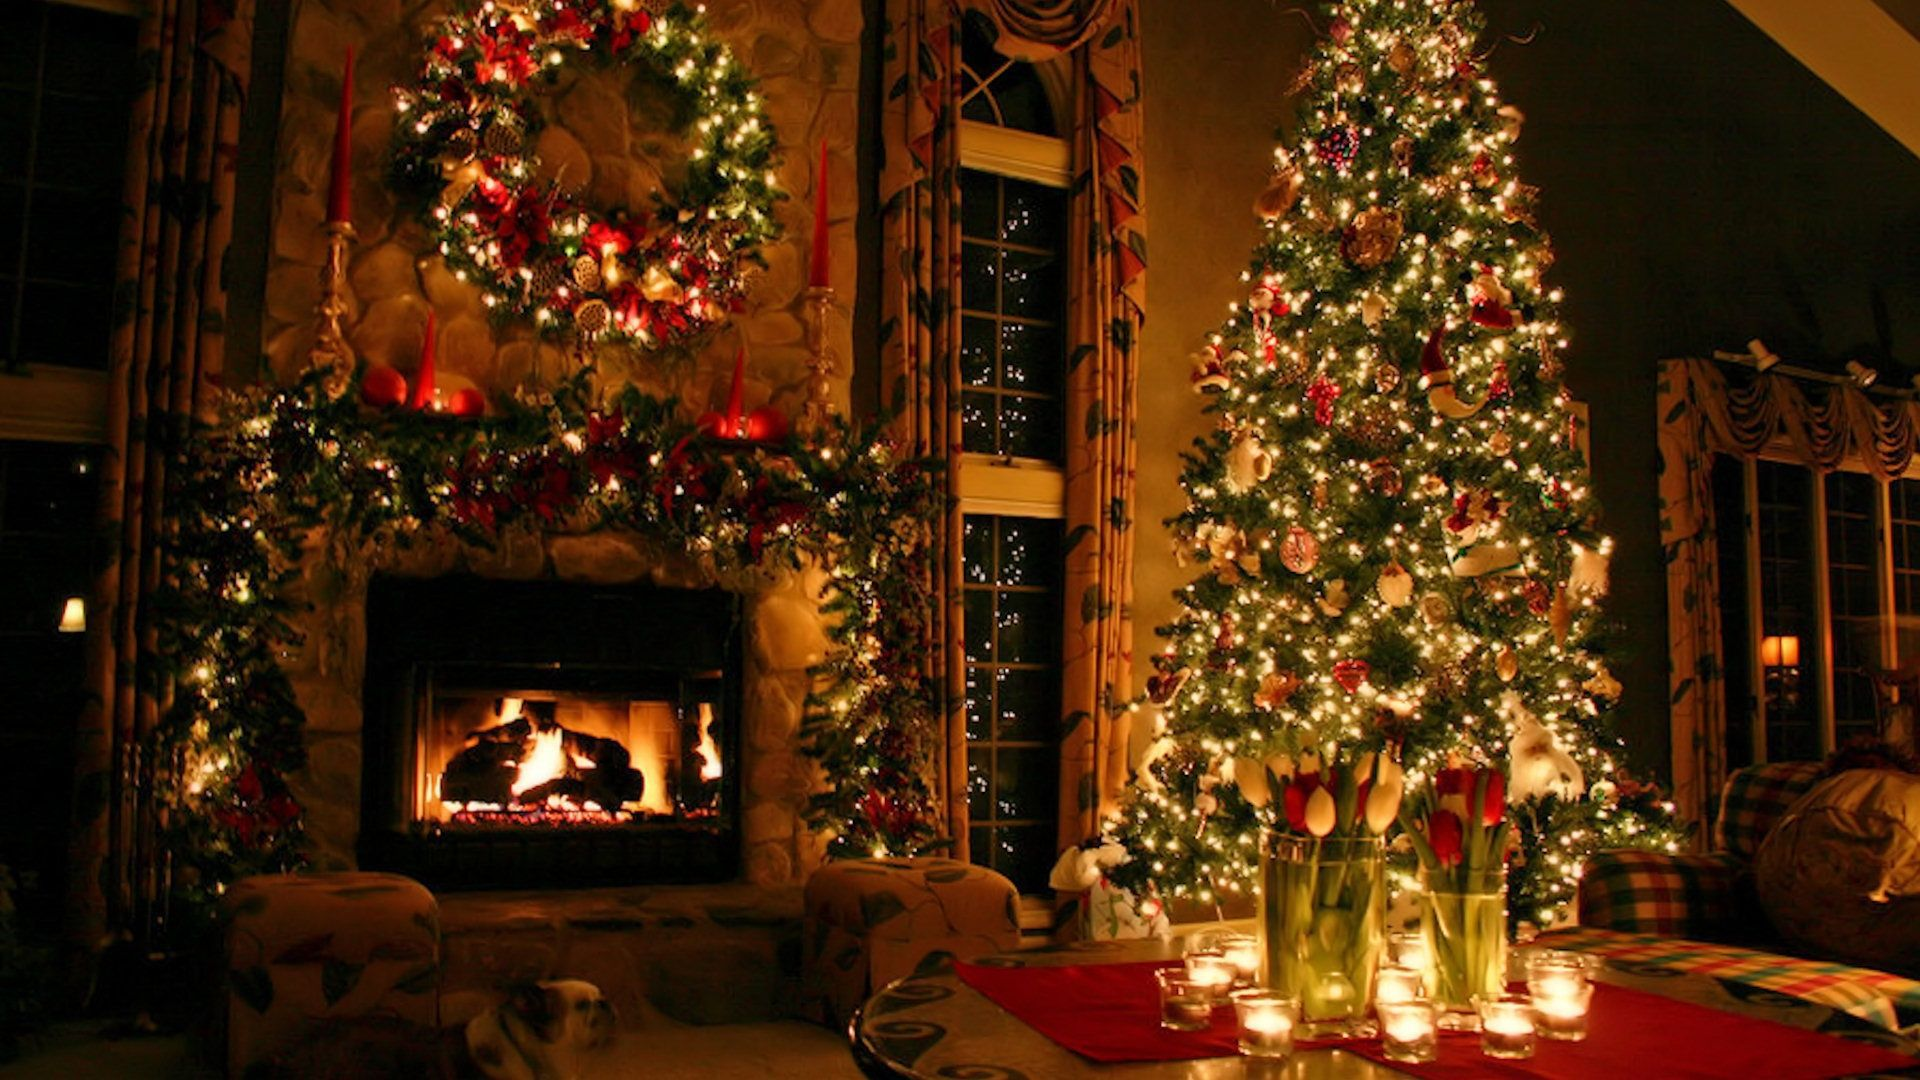 20 HD Christmas Wallpapers for Desktop Free - Download Here